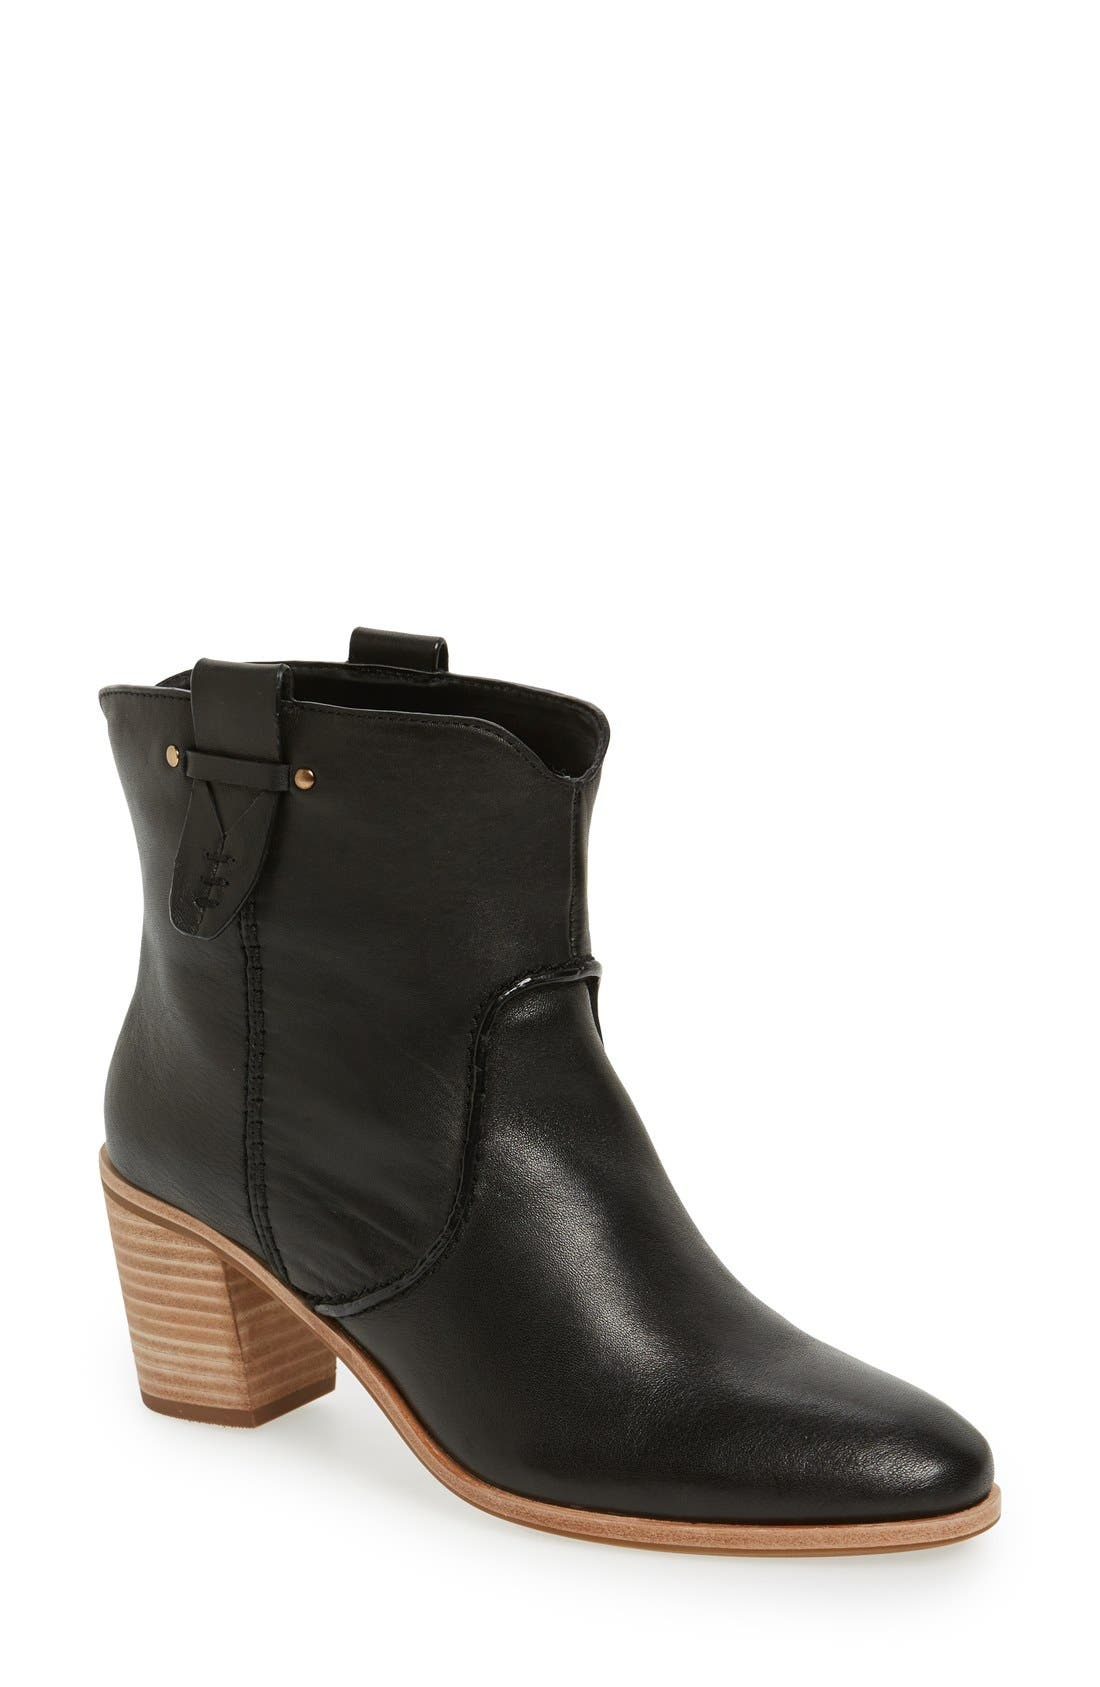 'Sophia' Pull-On Bootie,                             Main thumbnail 1, color,                             Black Leather